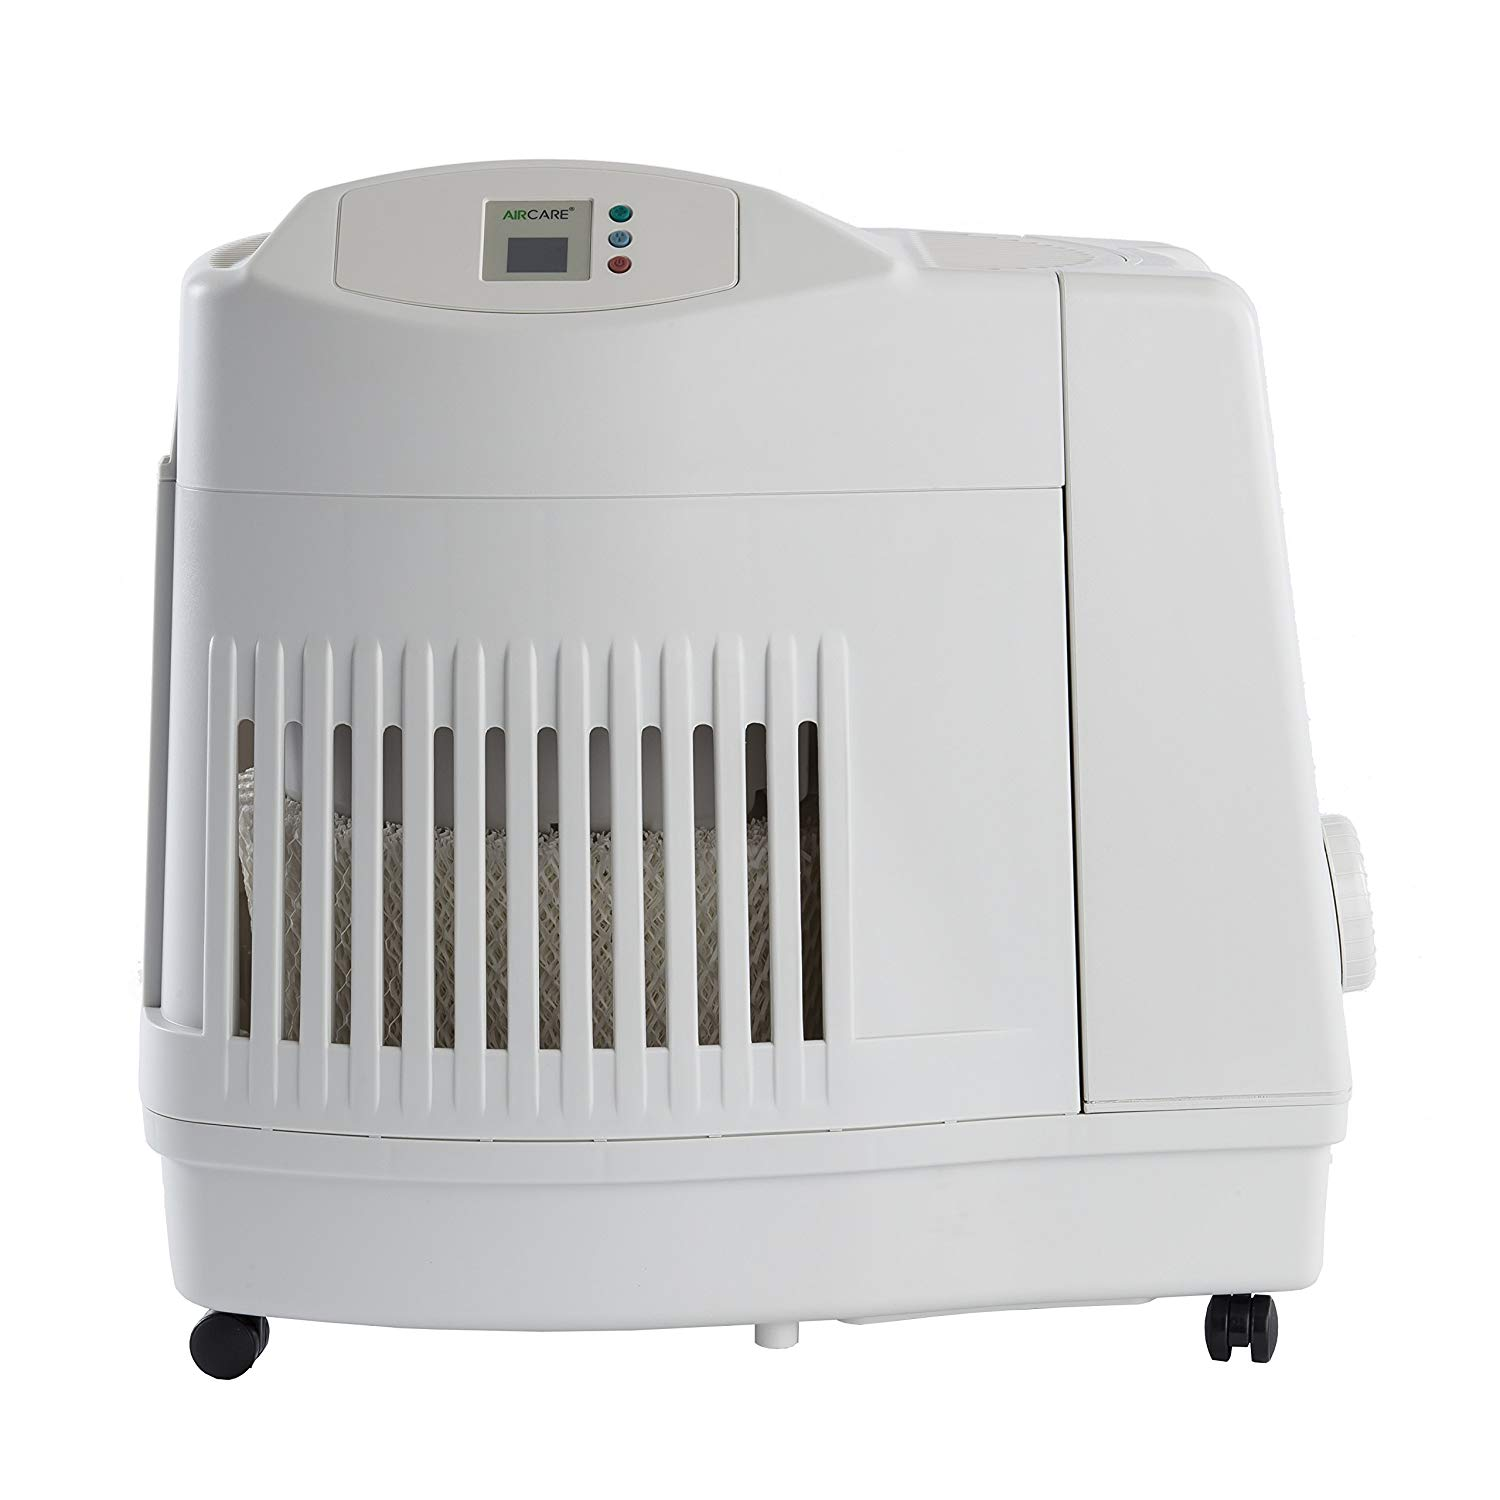 Essick Air AIRCARE MA1201 Evaporative Humidifier - best humidifier for condo